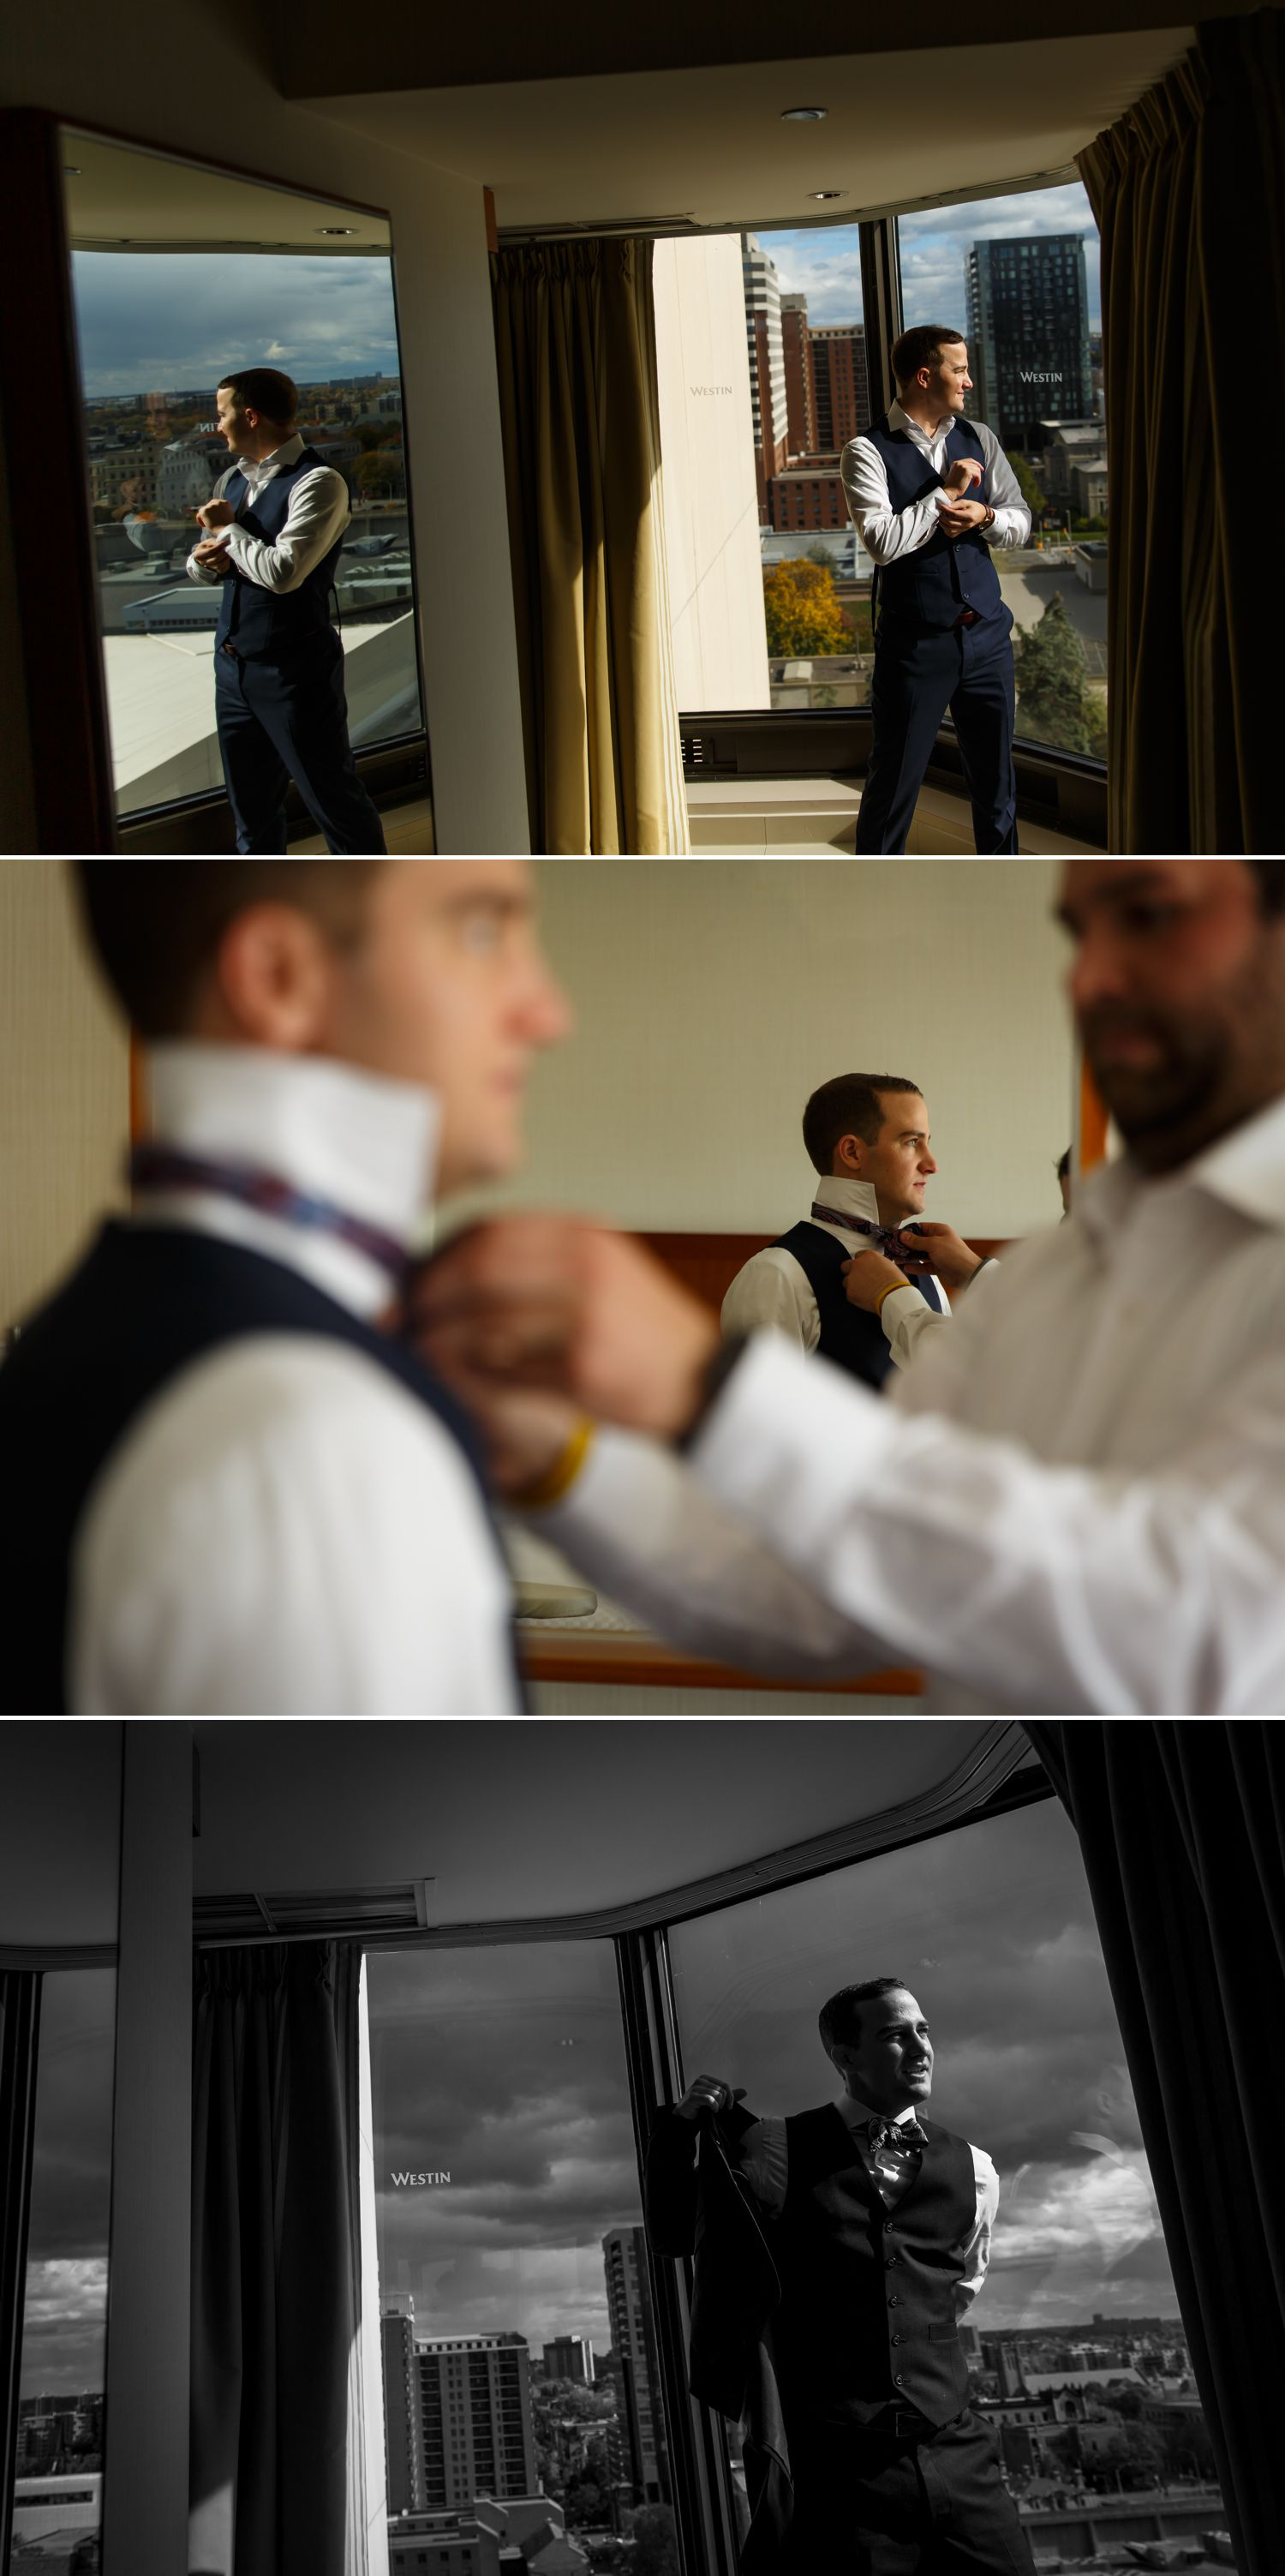 The groom with his groomsmen getting ready at the Westin Hotel in downtown Ottawa